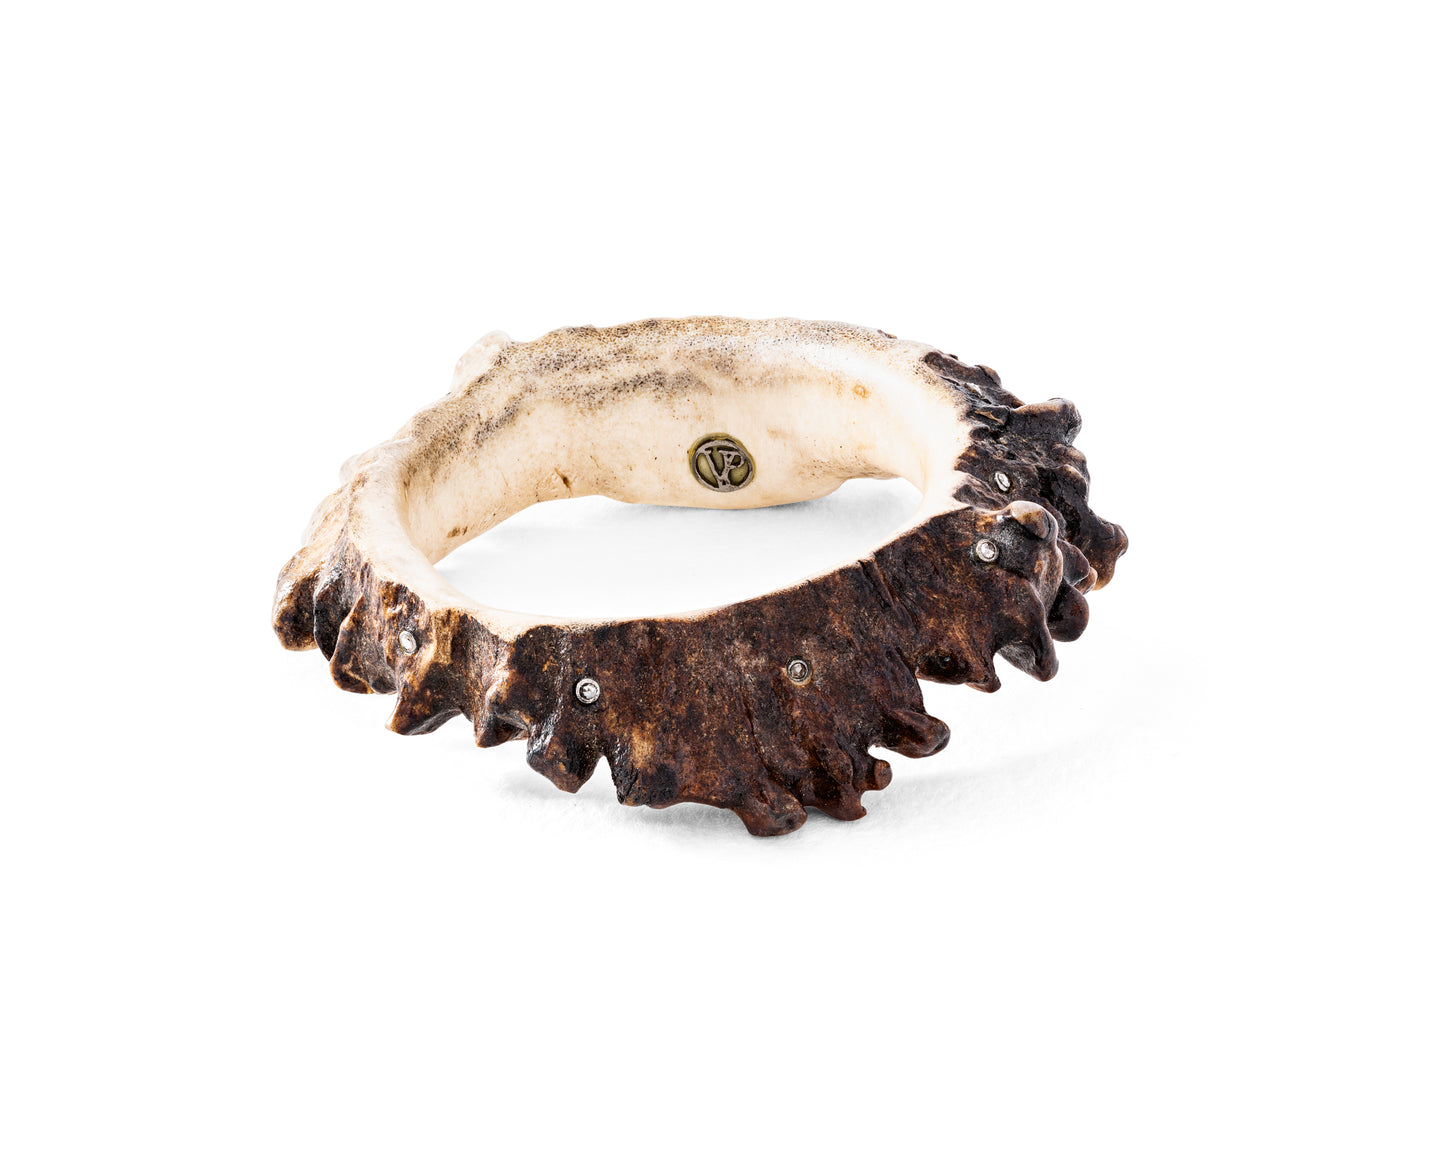 Genuine moose antler bangle, speckled with round diamonds and a VP insignia.  No two bangles are exactly alike.